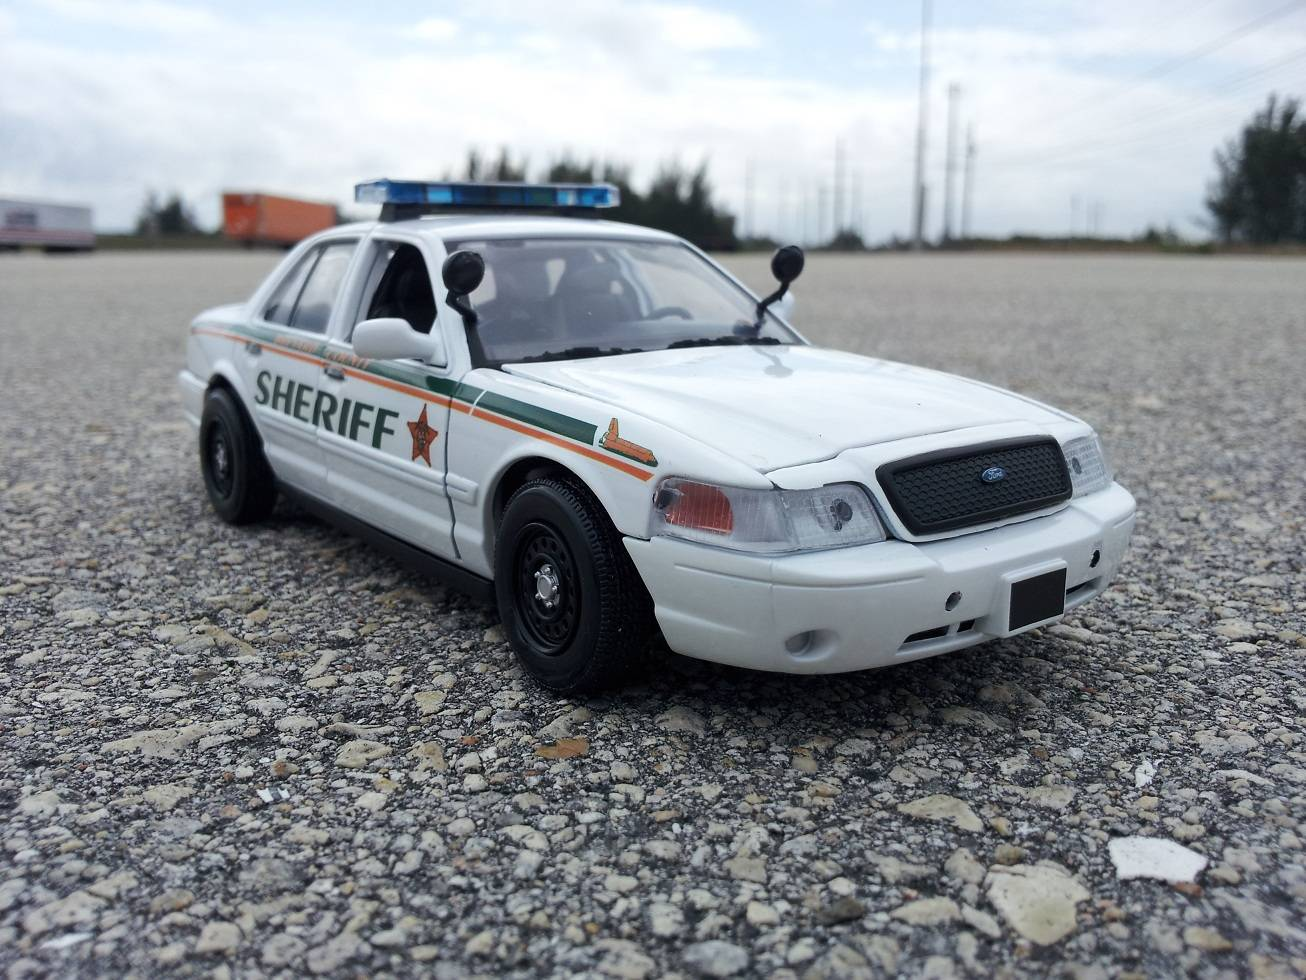 BREVARD COUNTY SHERIFF'S OFFICE, FL